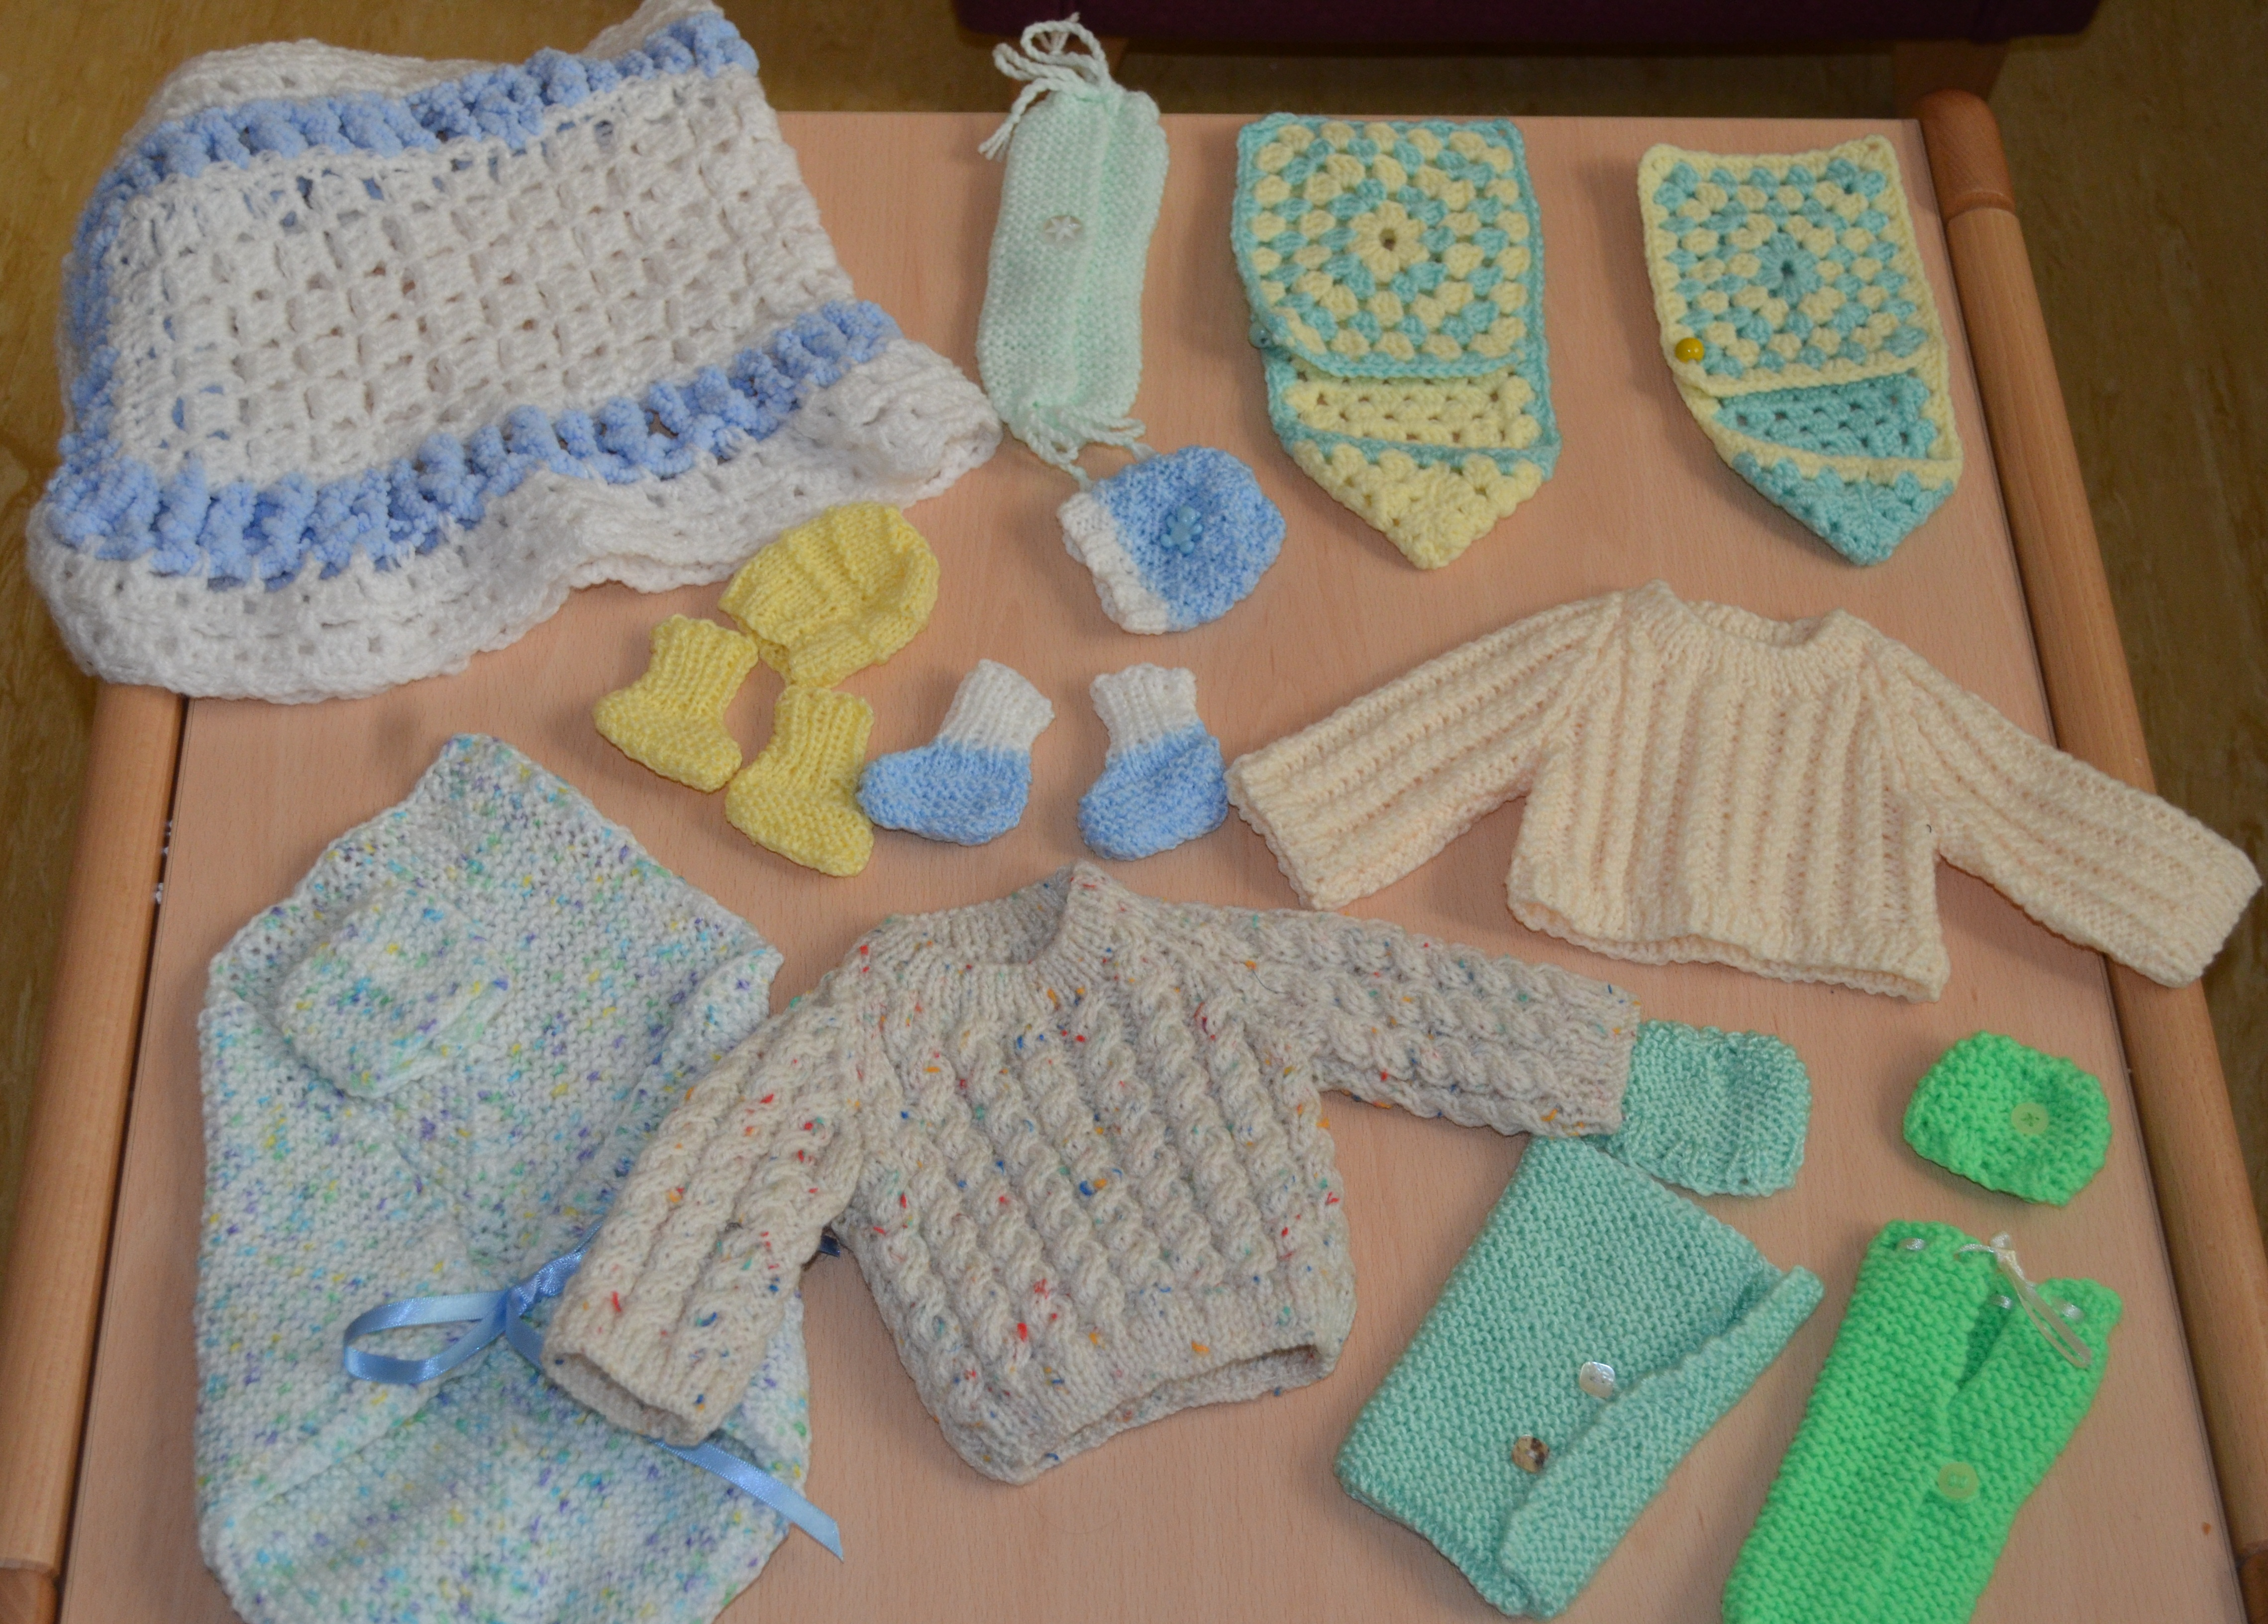 Swbh Charity Feels All Warm And Fuzzy After A Knitted Donation Is